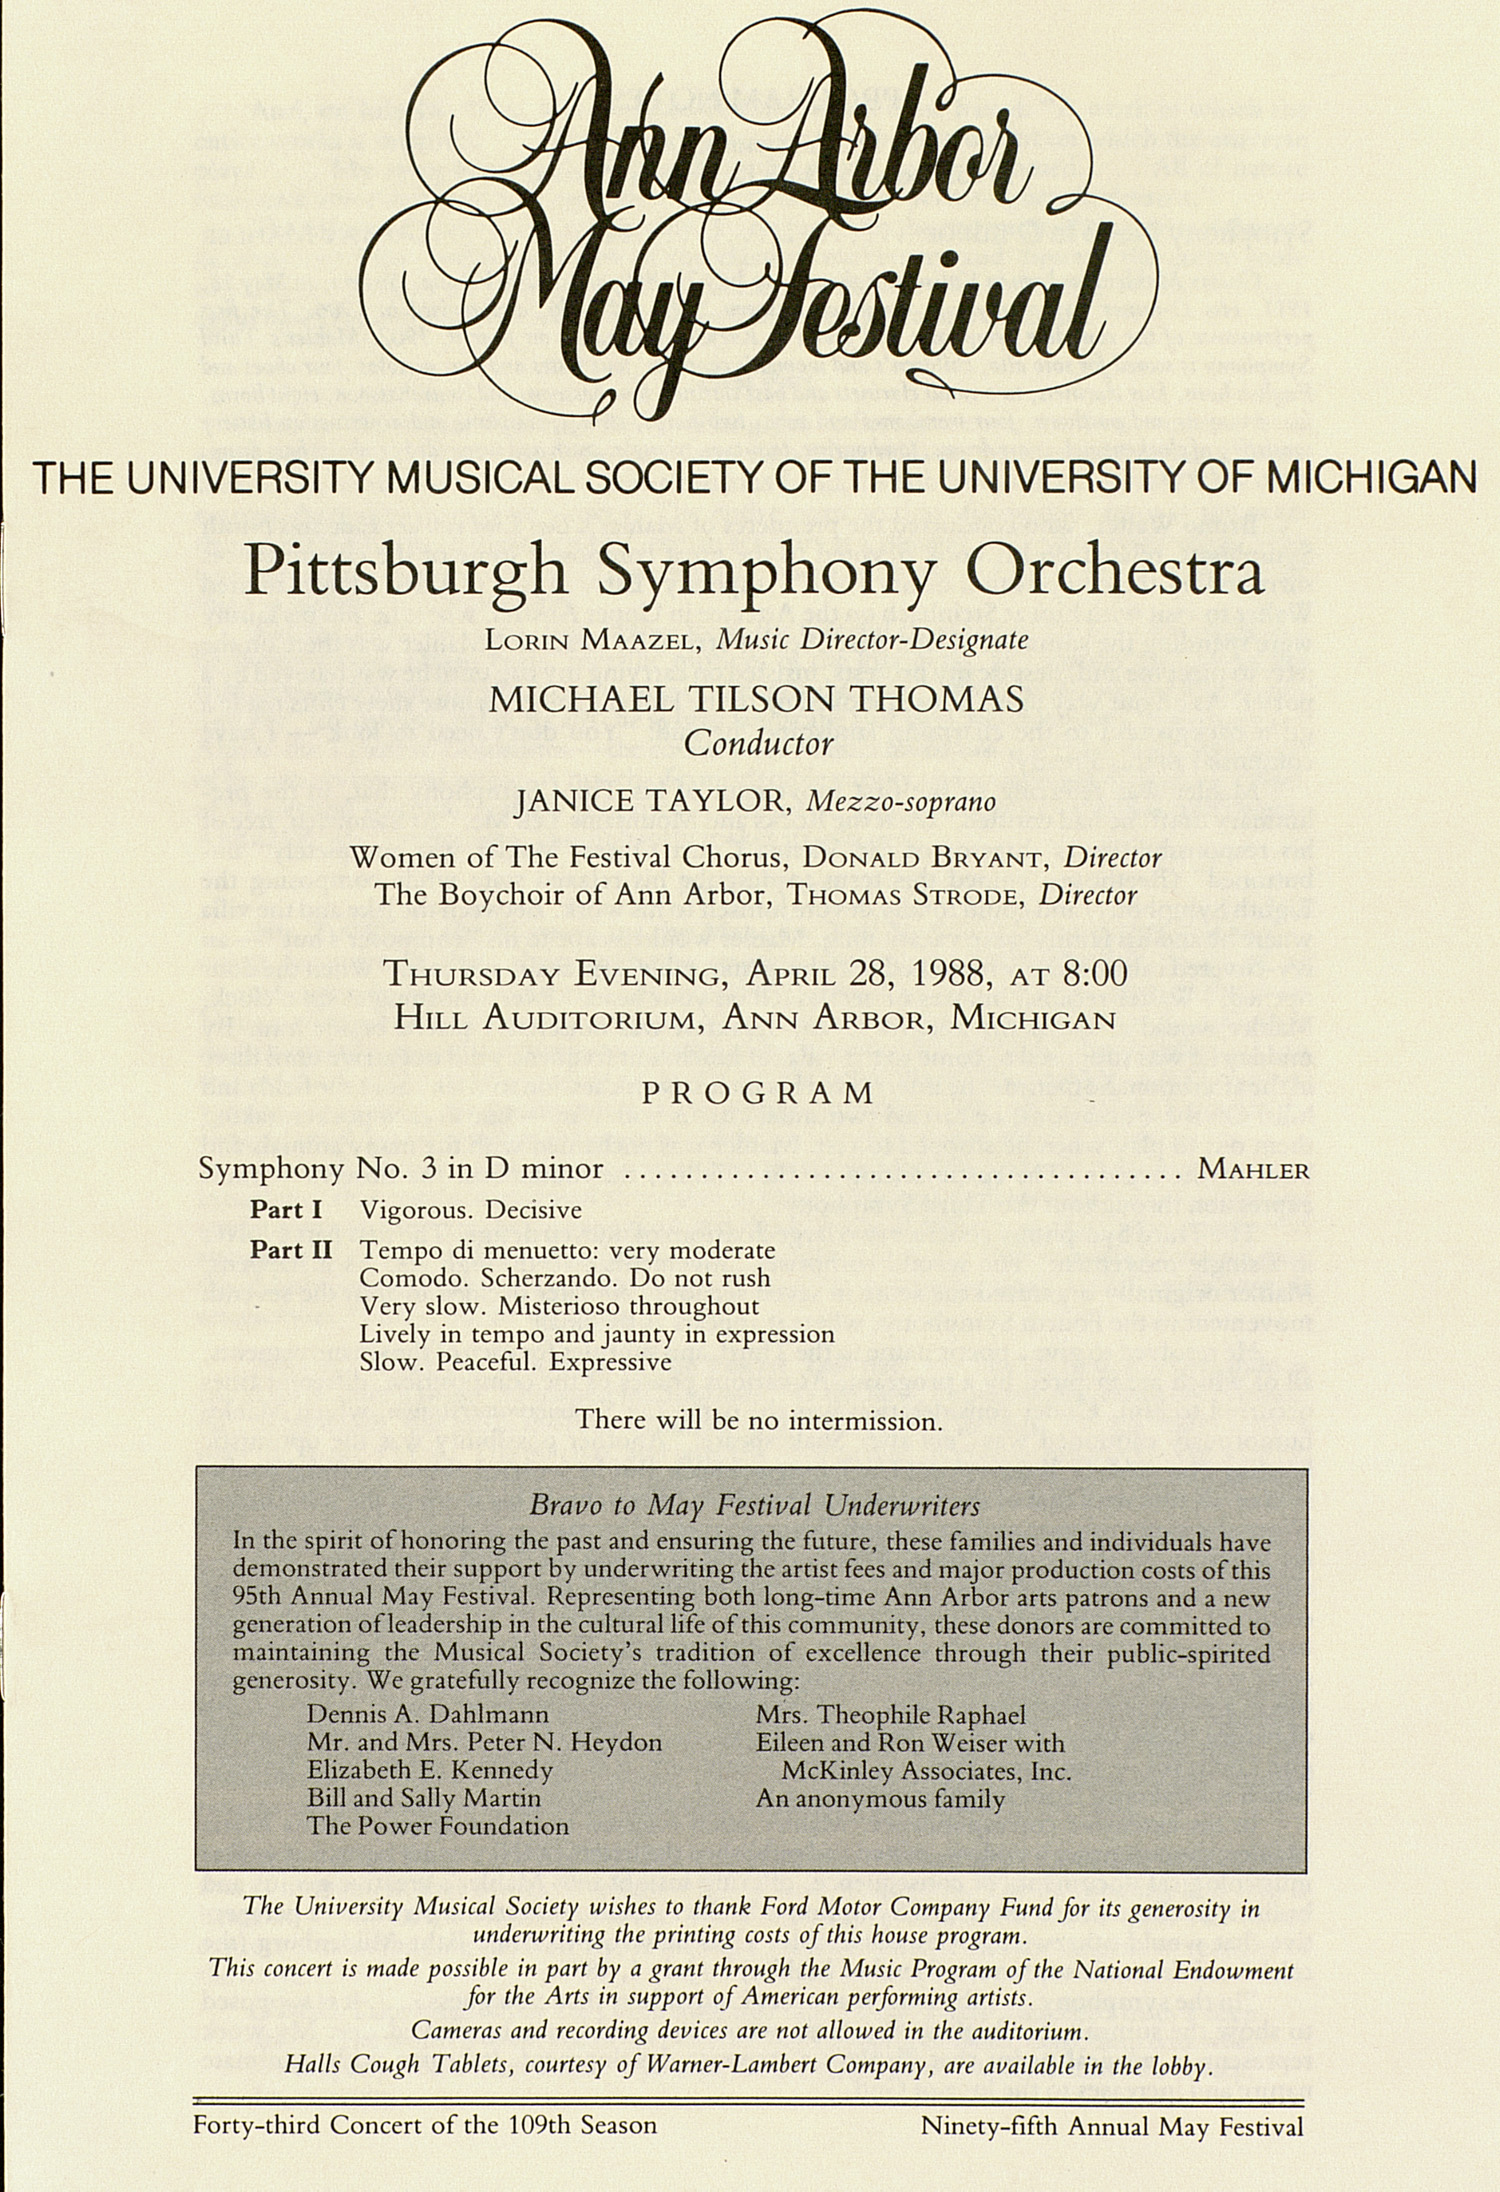 UMS Concert Program, April 28, 1988: Ann Arbor May Festival -- Pittsburgh Symphony Orchestra image